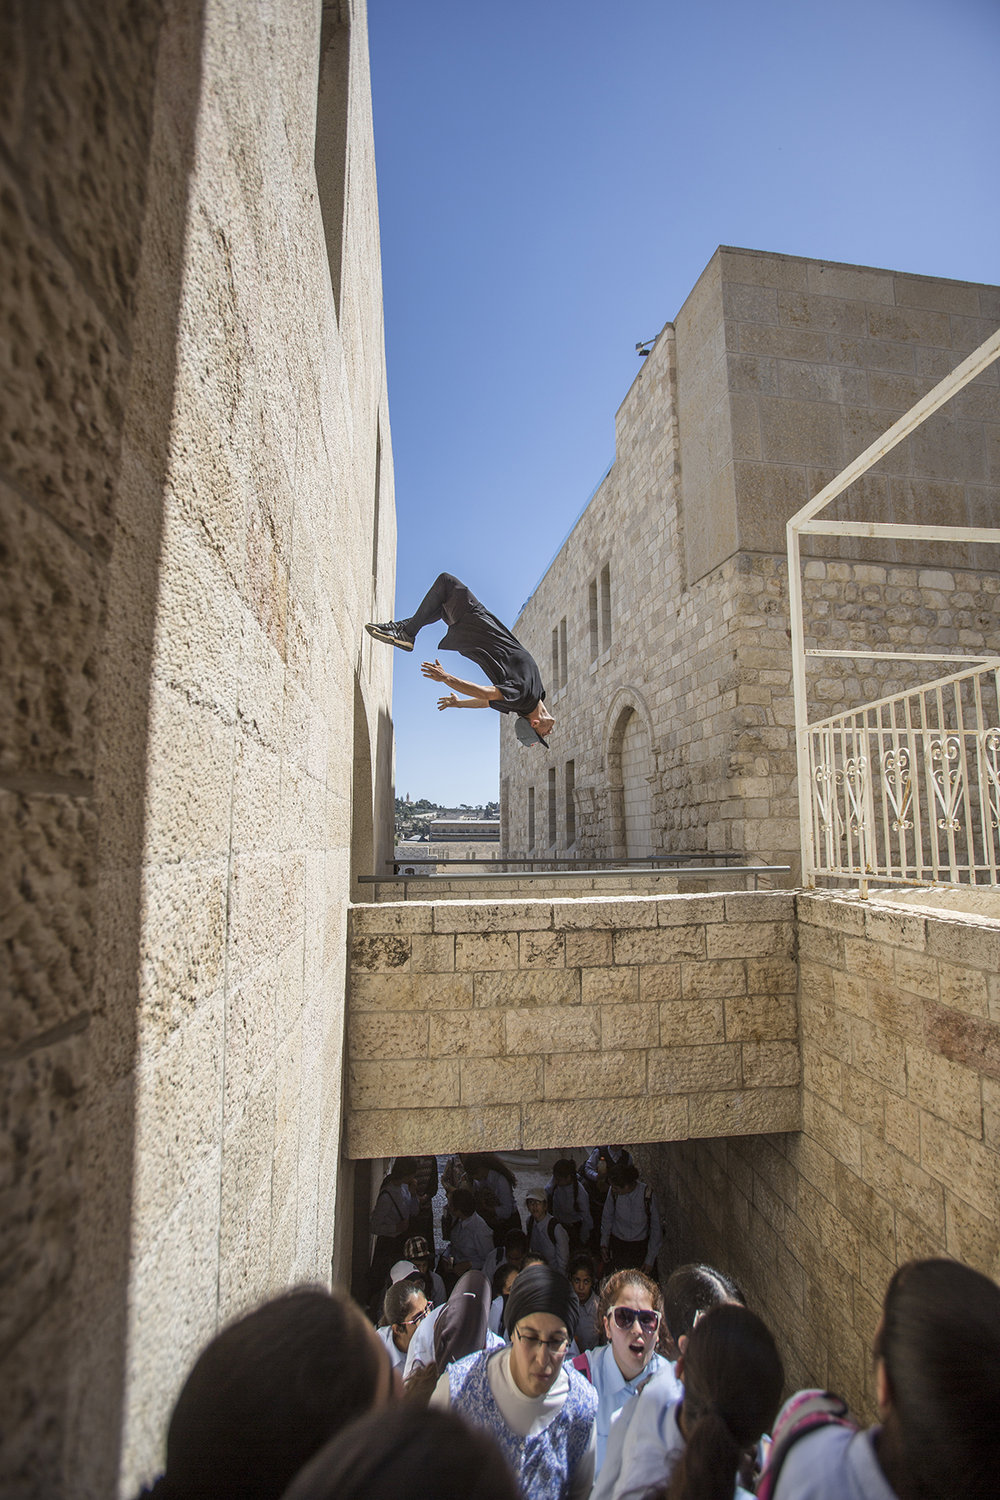 Jason Paul wall flipping in Jerusalem.